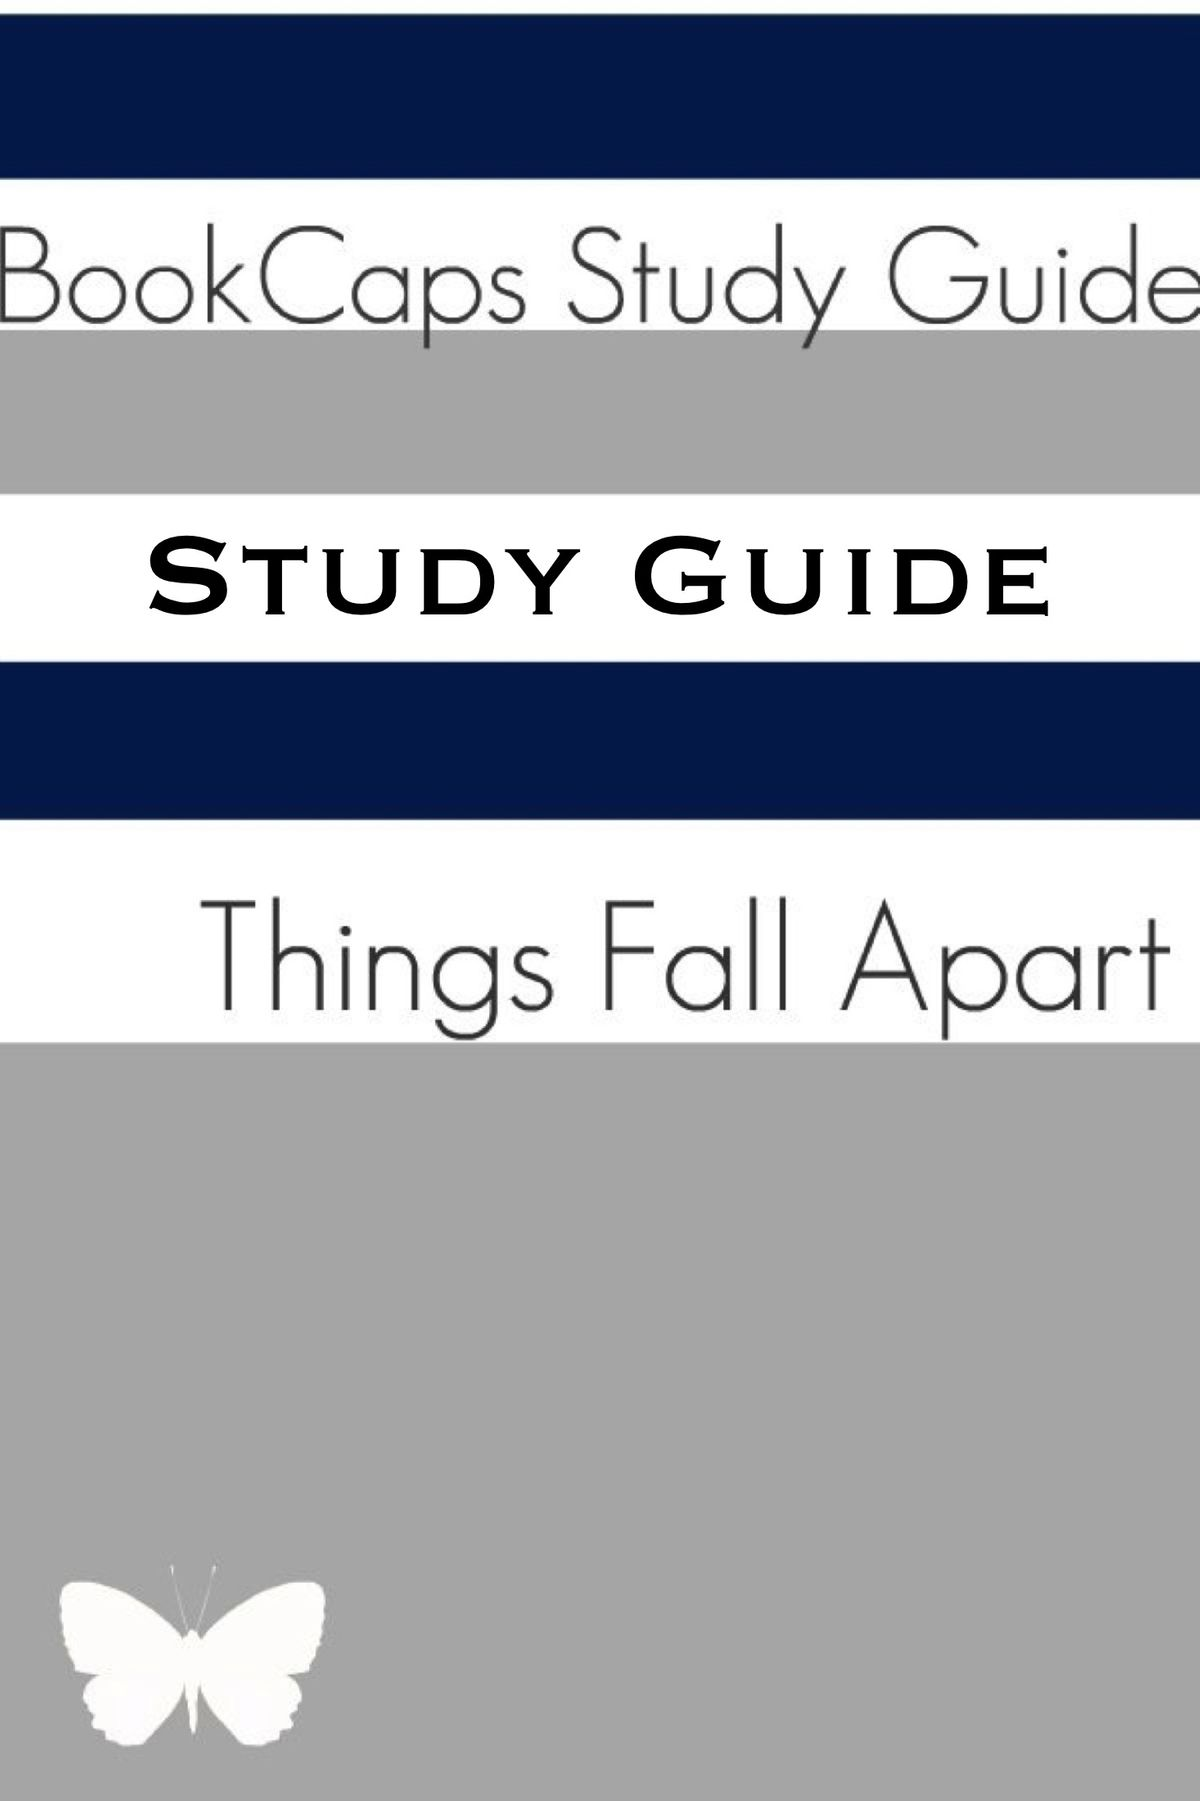 Study Guide Things Fall Apart A Bookcaps Study Guide